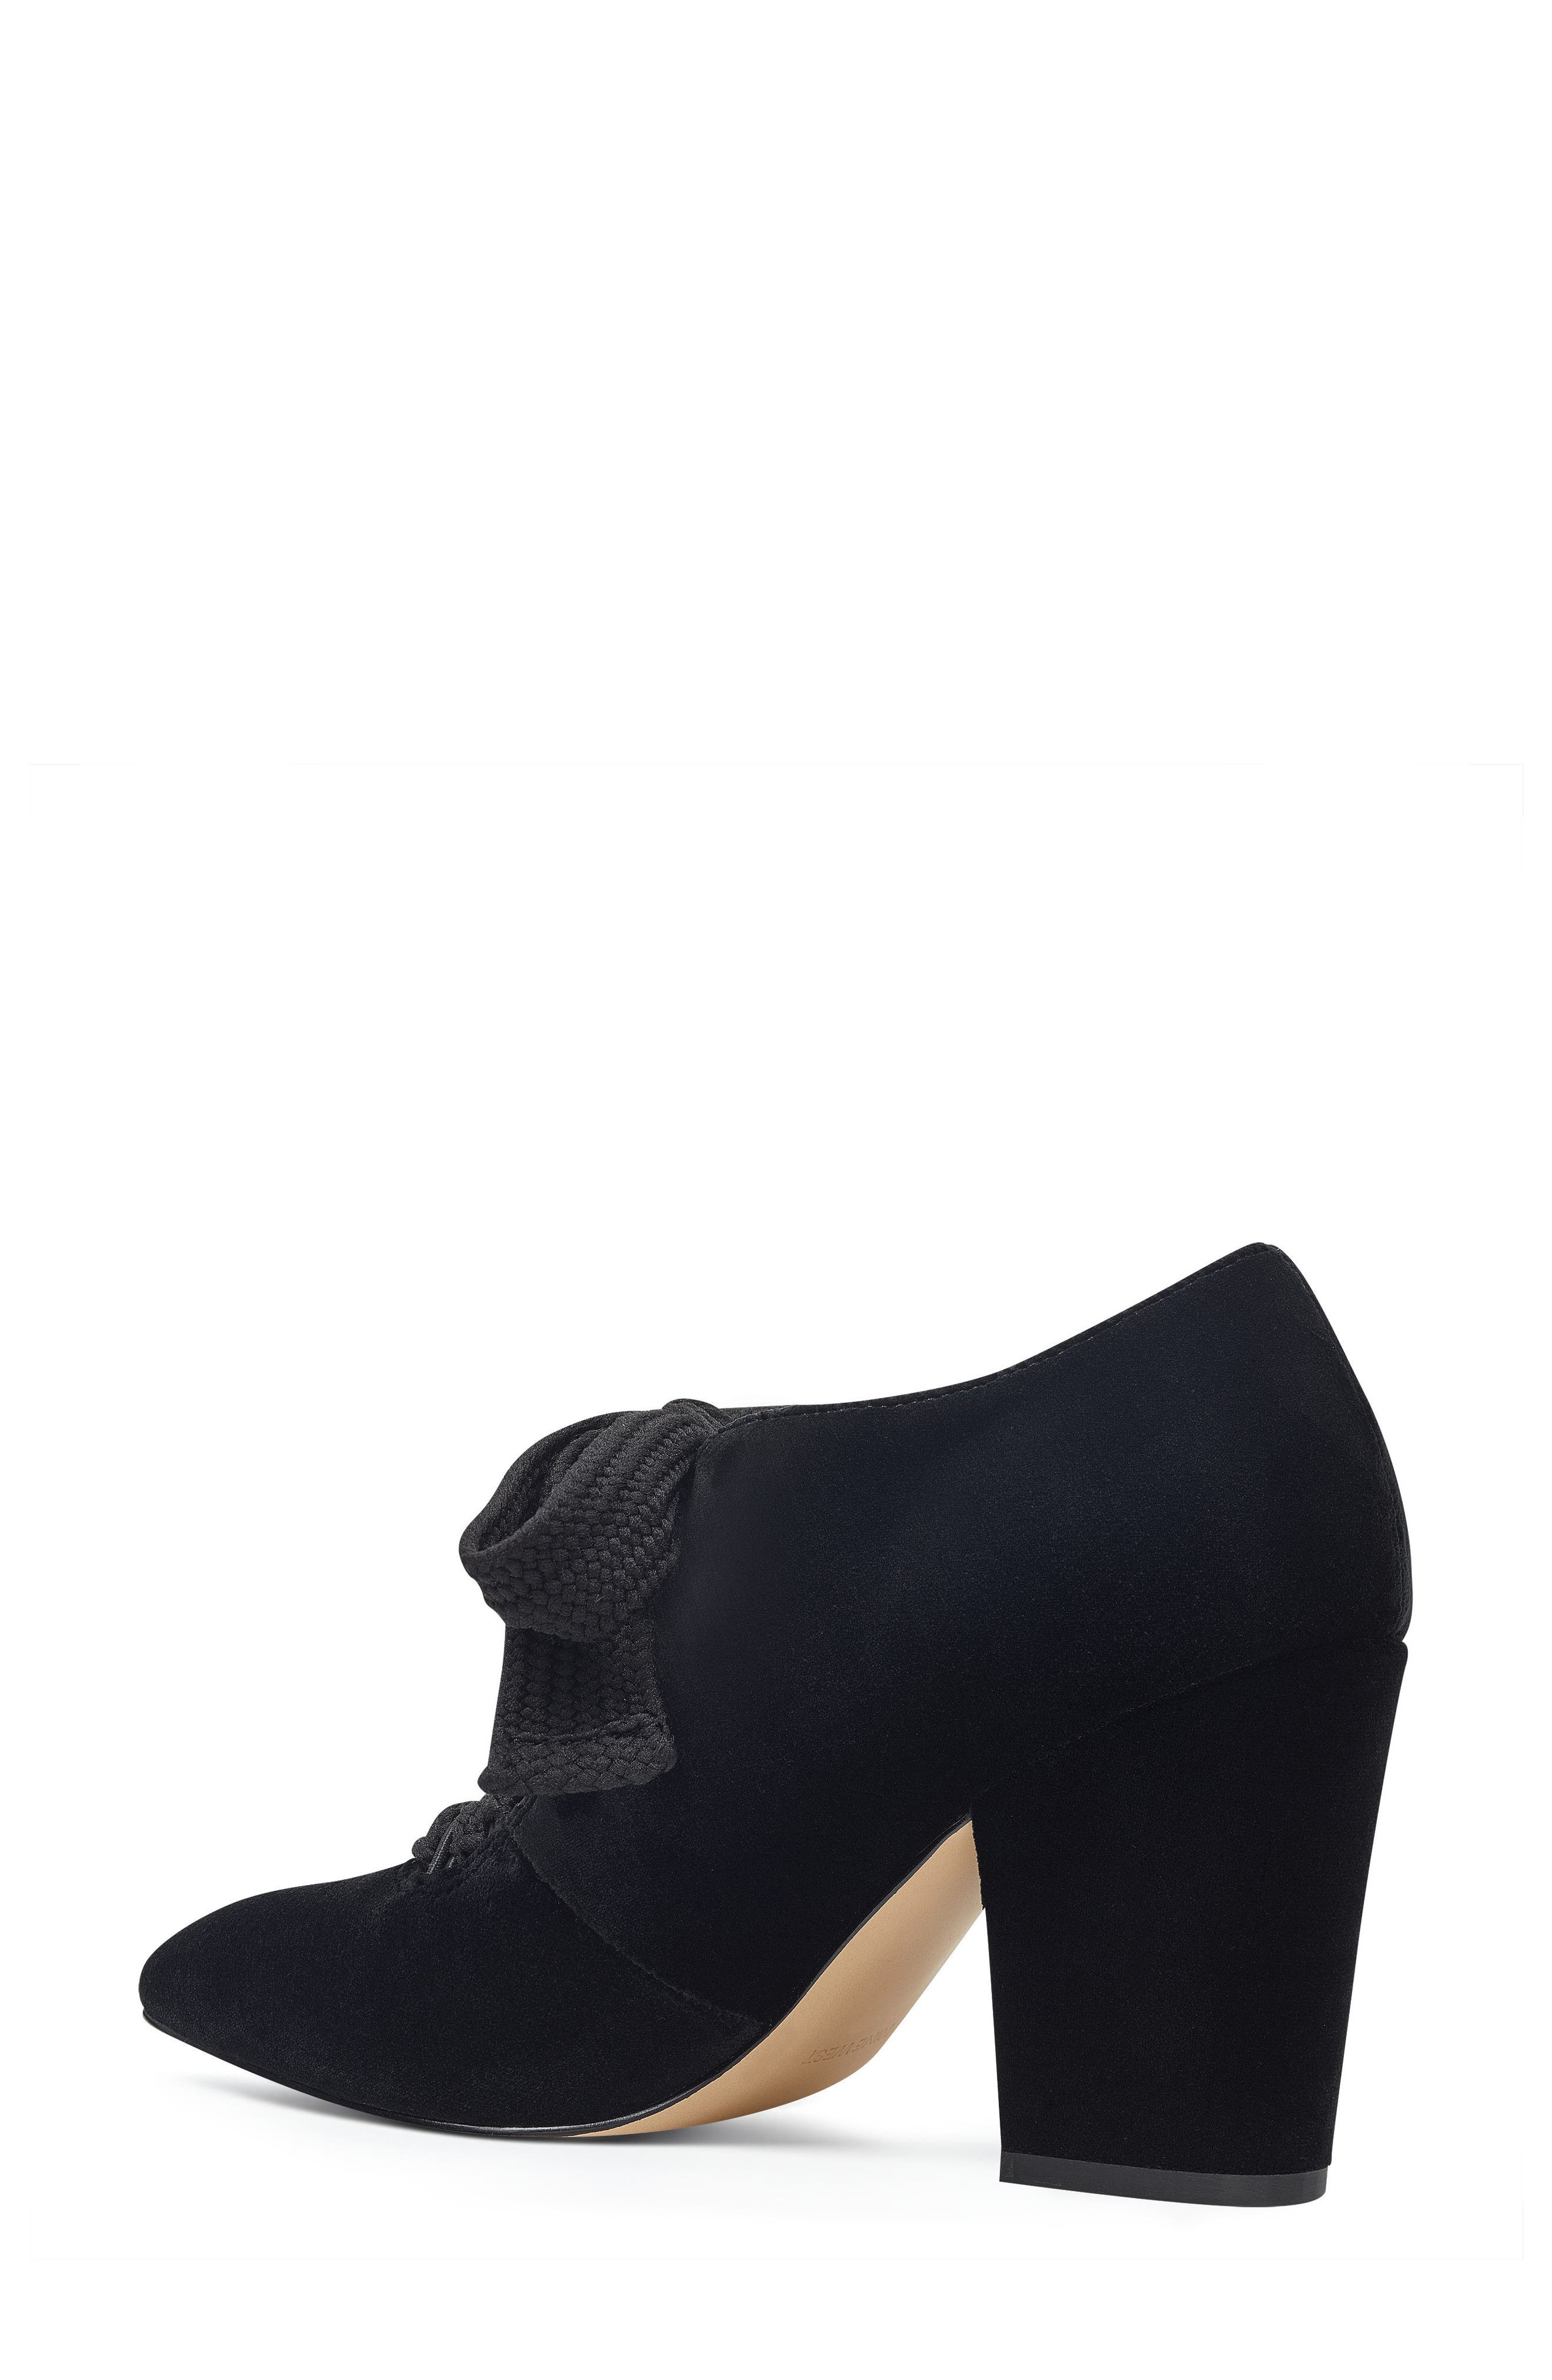 Sweeorn Lace-Up Bootie,                             Alternate thumbnail 2, color,                             009